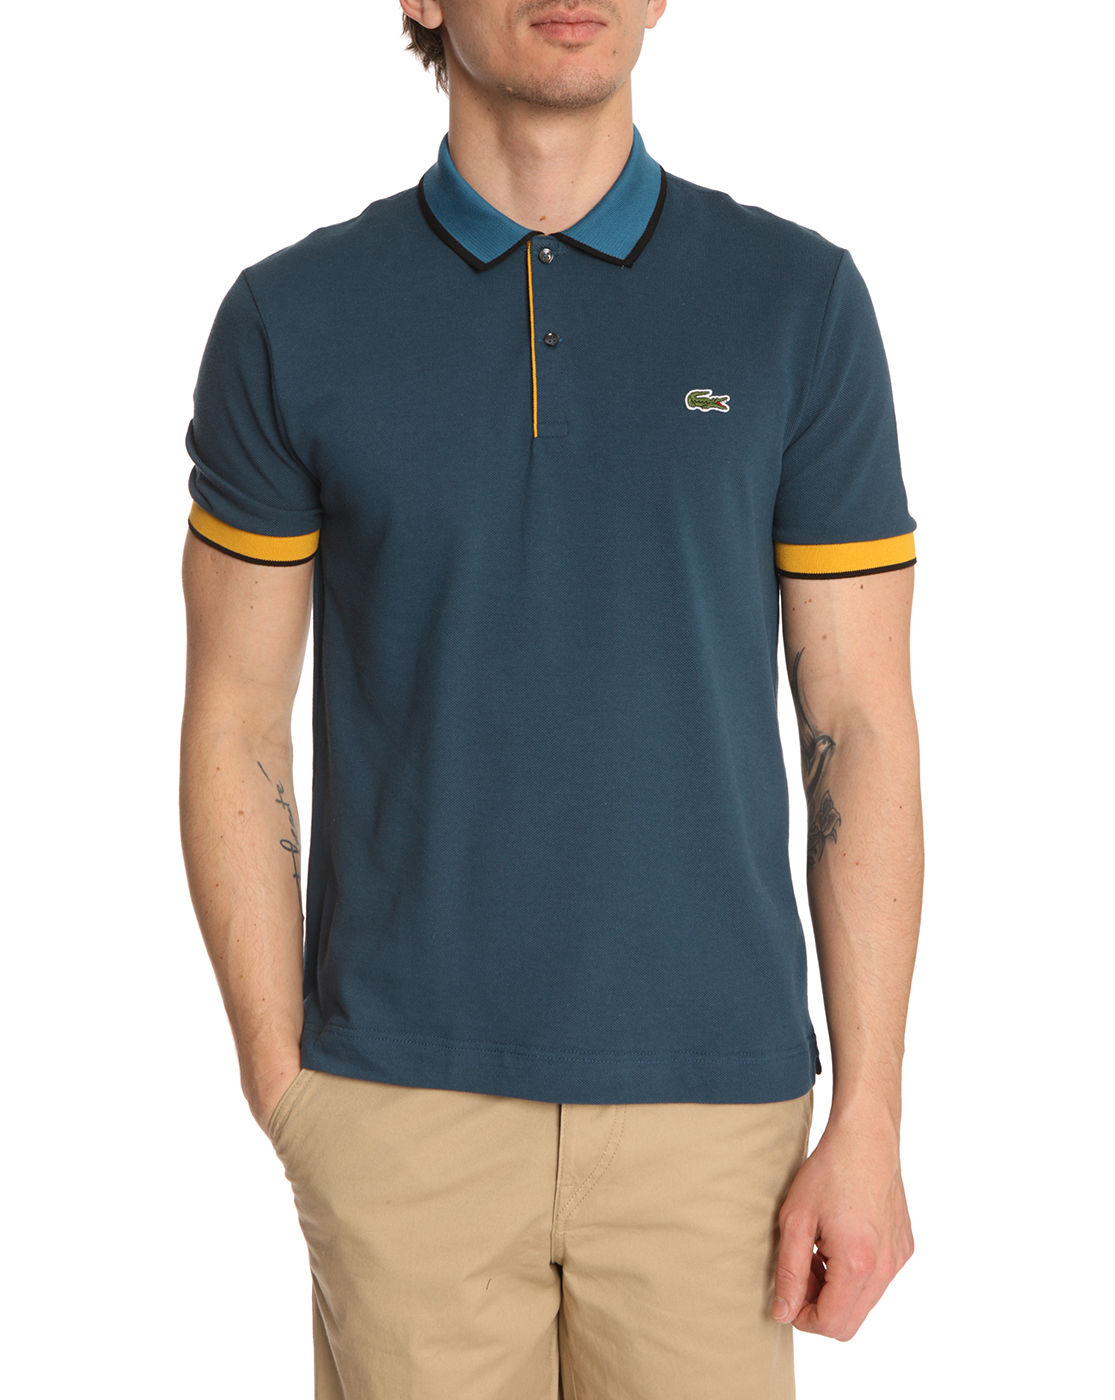 Lacoste L Ive Royal Blue Polo Shirt With Twotone Collar In